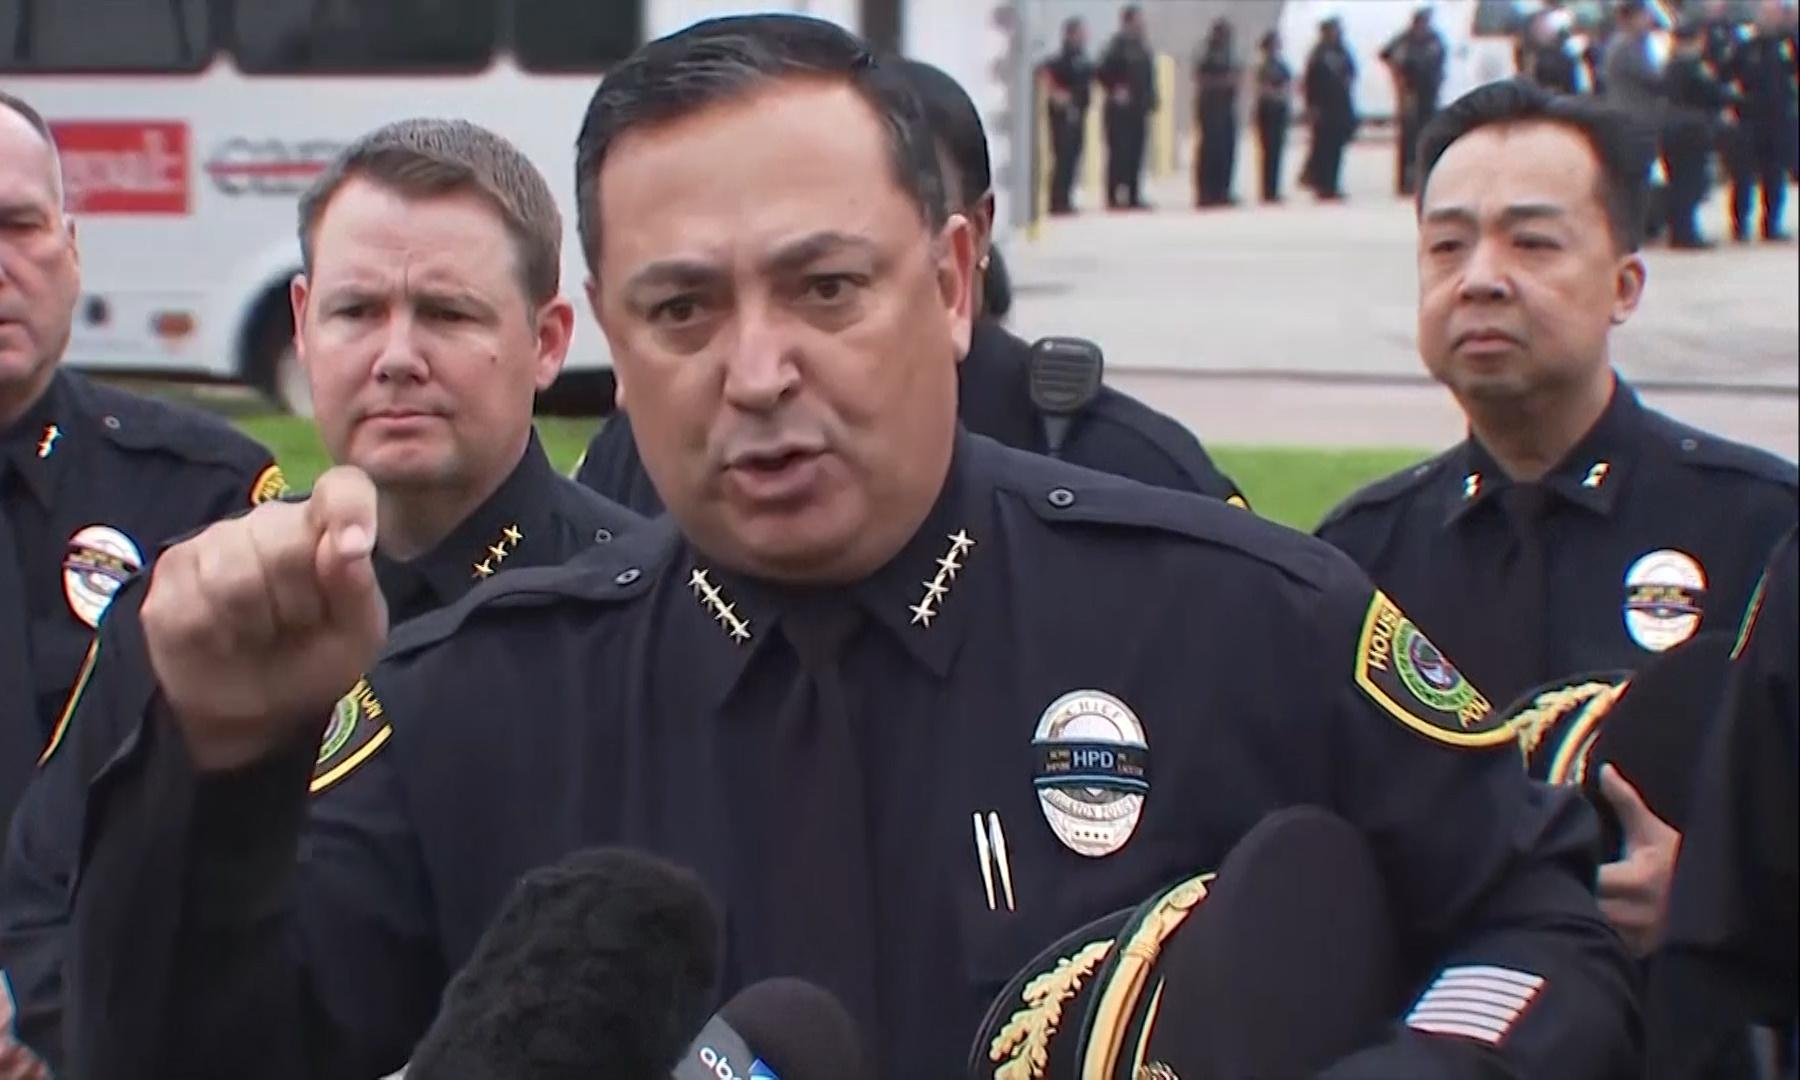 Houston police chief rips 'smug' Cruz and McConnell, who 'don't want to piss off the NRA'